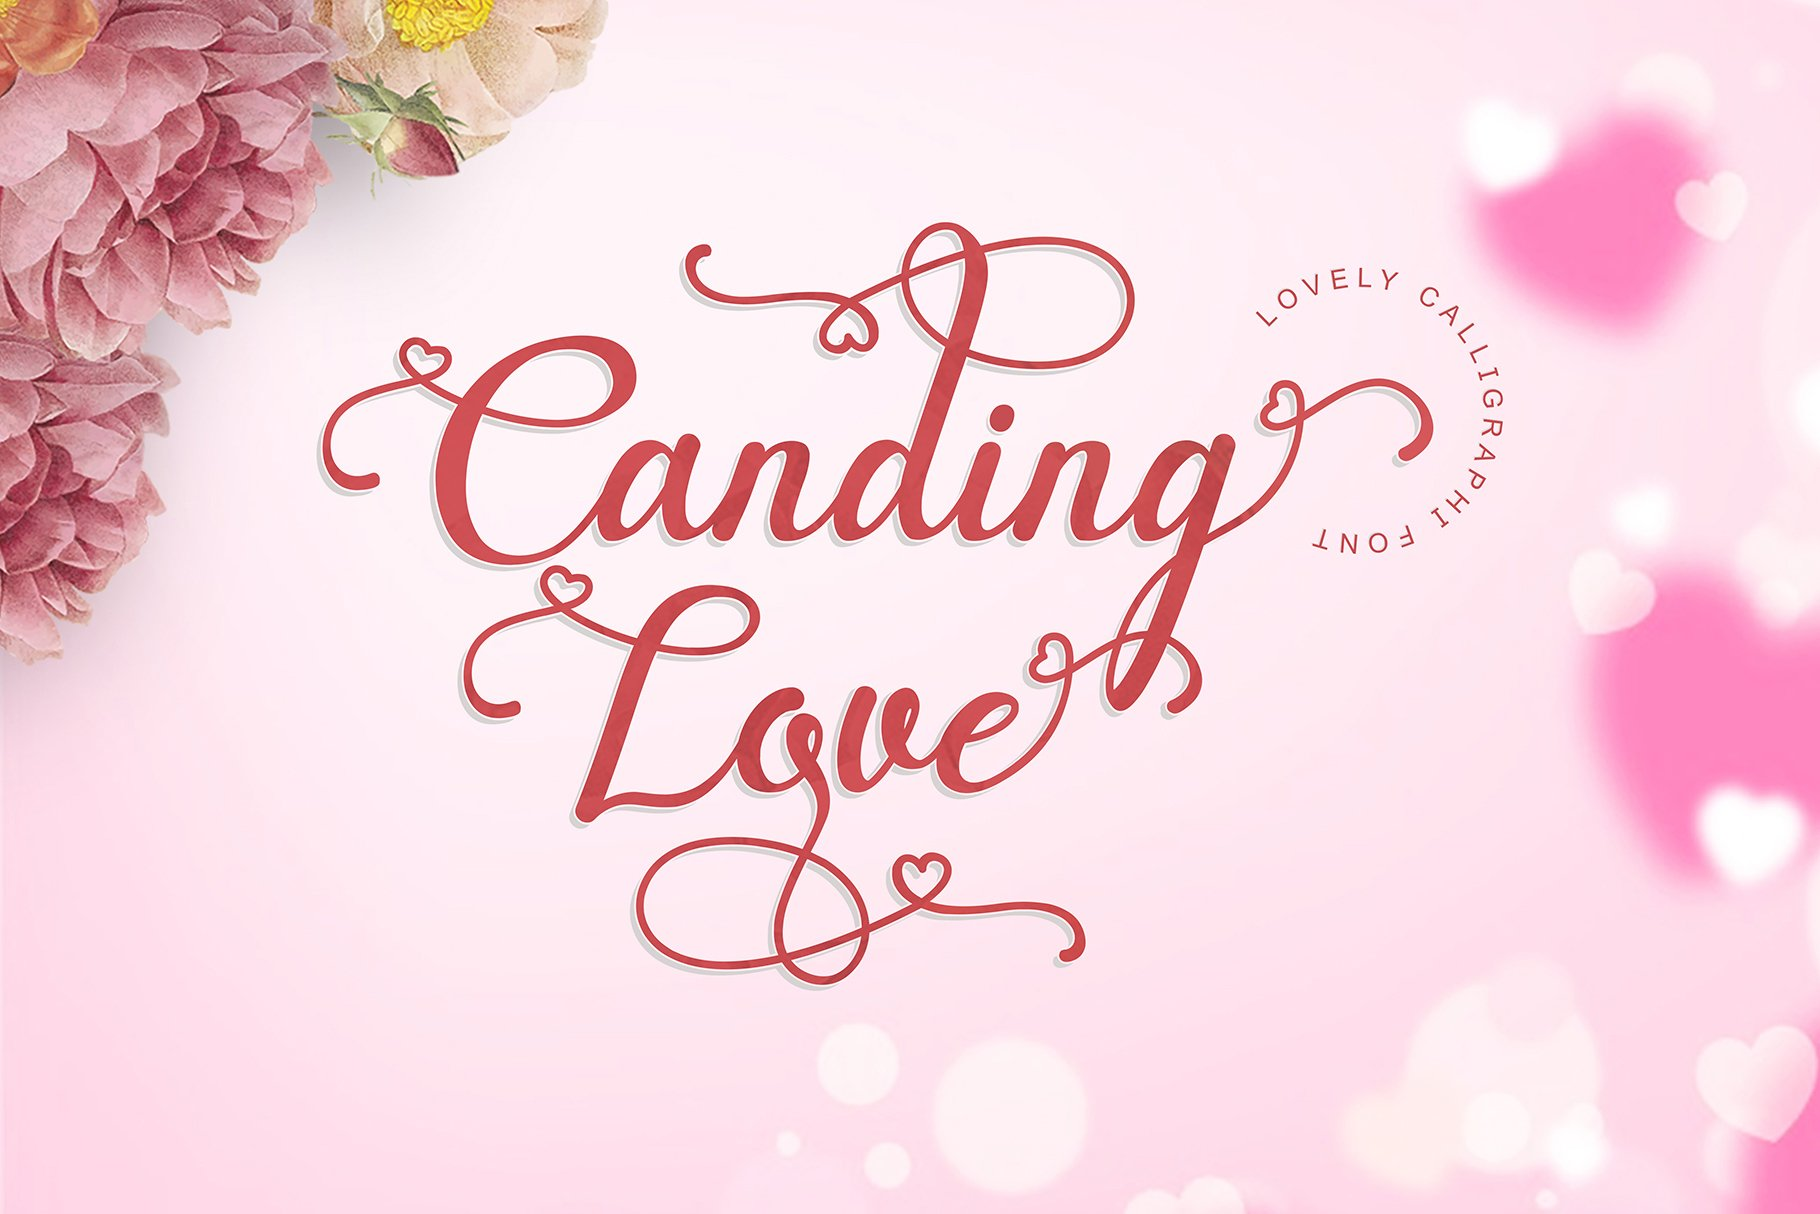 Canding Love - Script font Type face example image 2